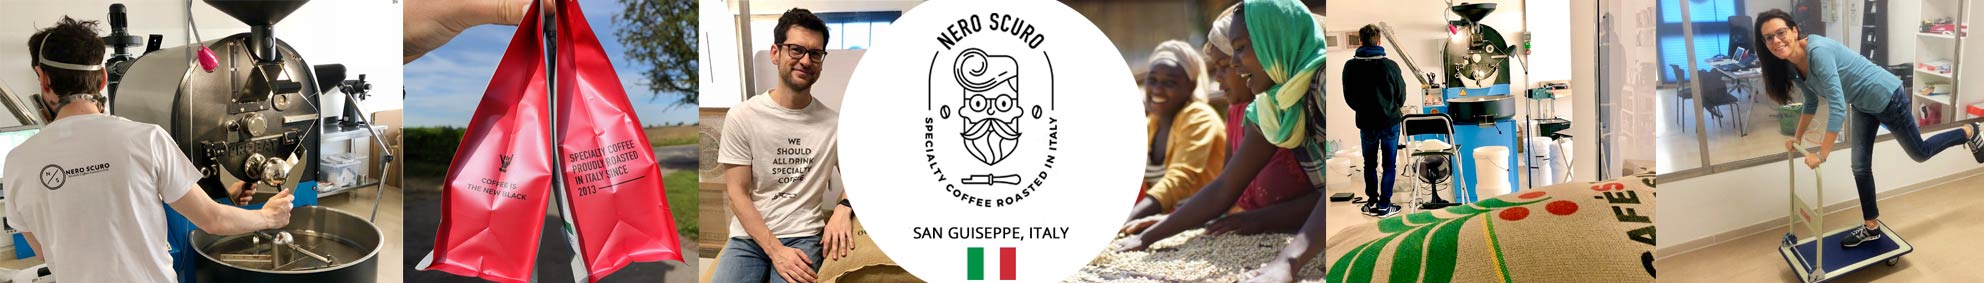 Nero Scuro Italy Coffee Roaster on UK Best Coffee Subscription